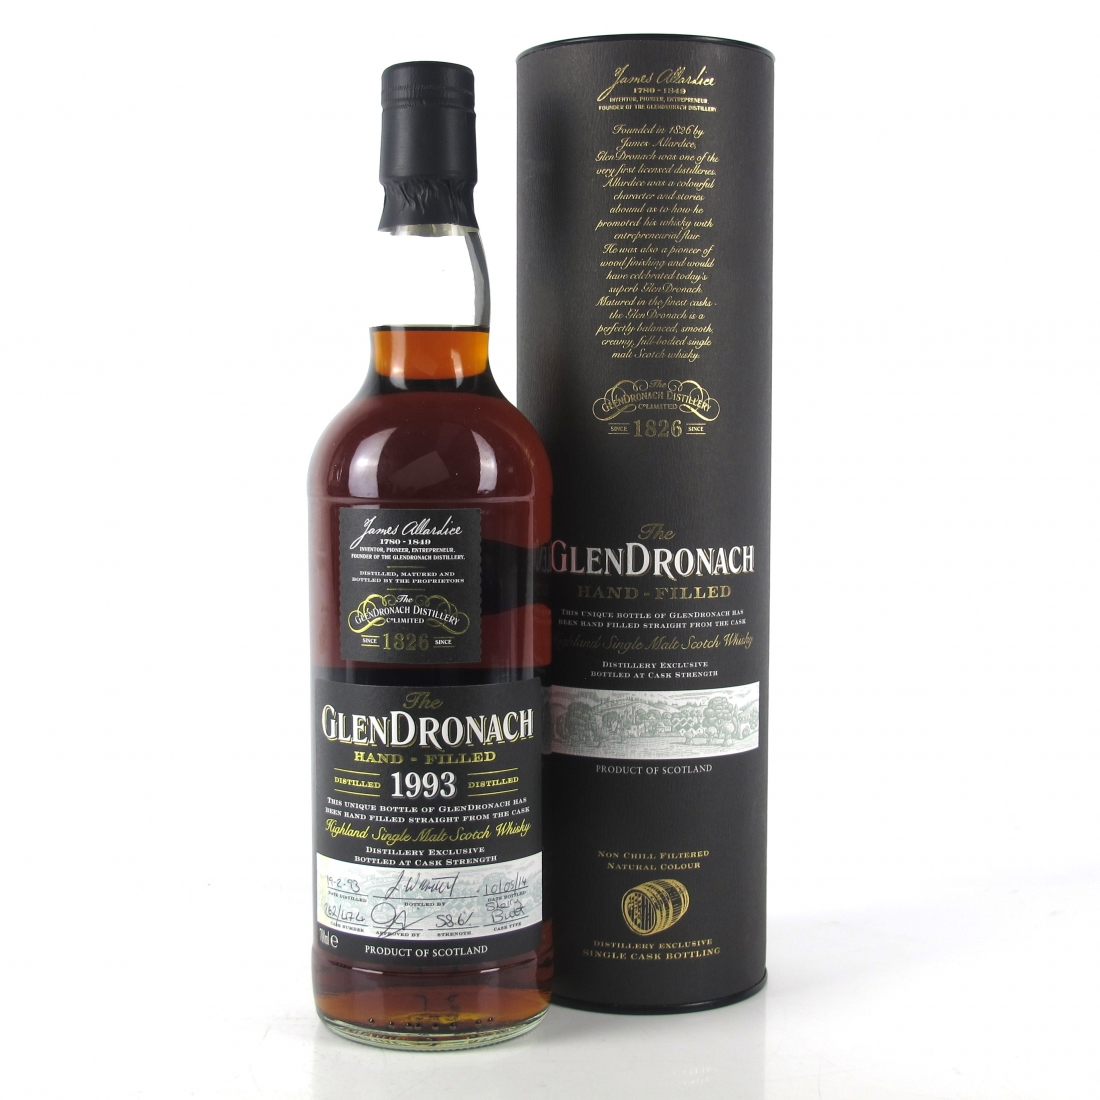 Glendronach 1993 Hand Filled 21 Year Old Single Cask